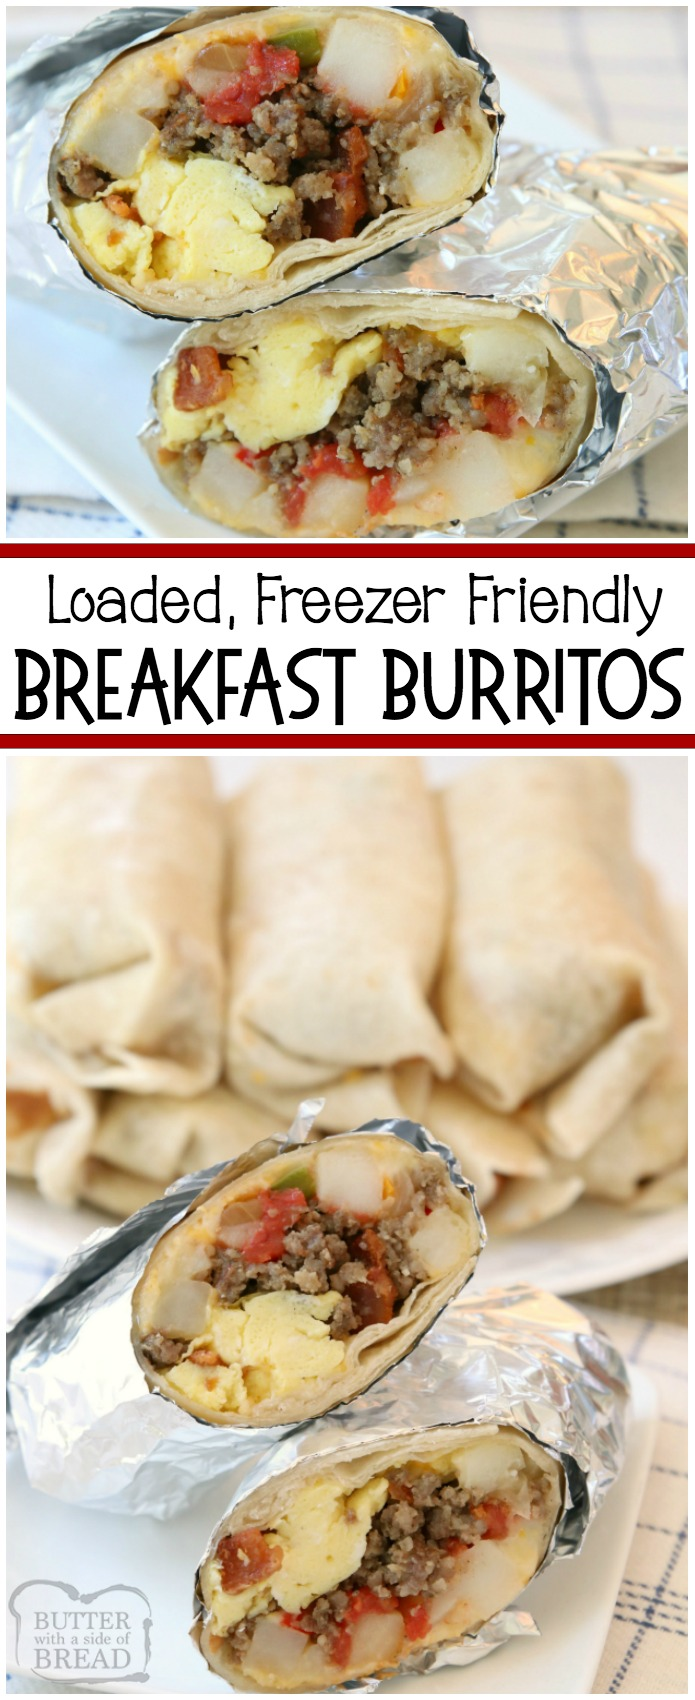 Loaded Breakfast Burrito recipe made with eggs, tomatoes, cheese, hash browns, sausage, bacon and more! Cook and assemble, then eat for breakfast or dinner and freeze the rest! #breakfast #burrito #recipe #cheese #bacon #sausage #breakfastfordinner #food #recipes from BUTTER WITH A SIDE OF BREAD